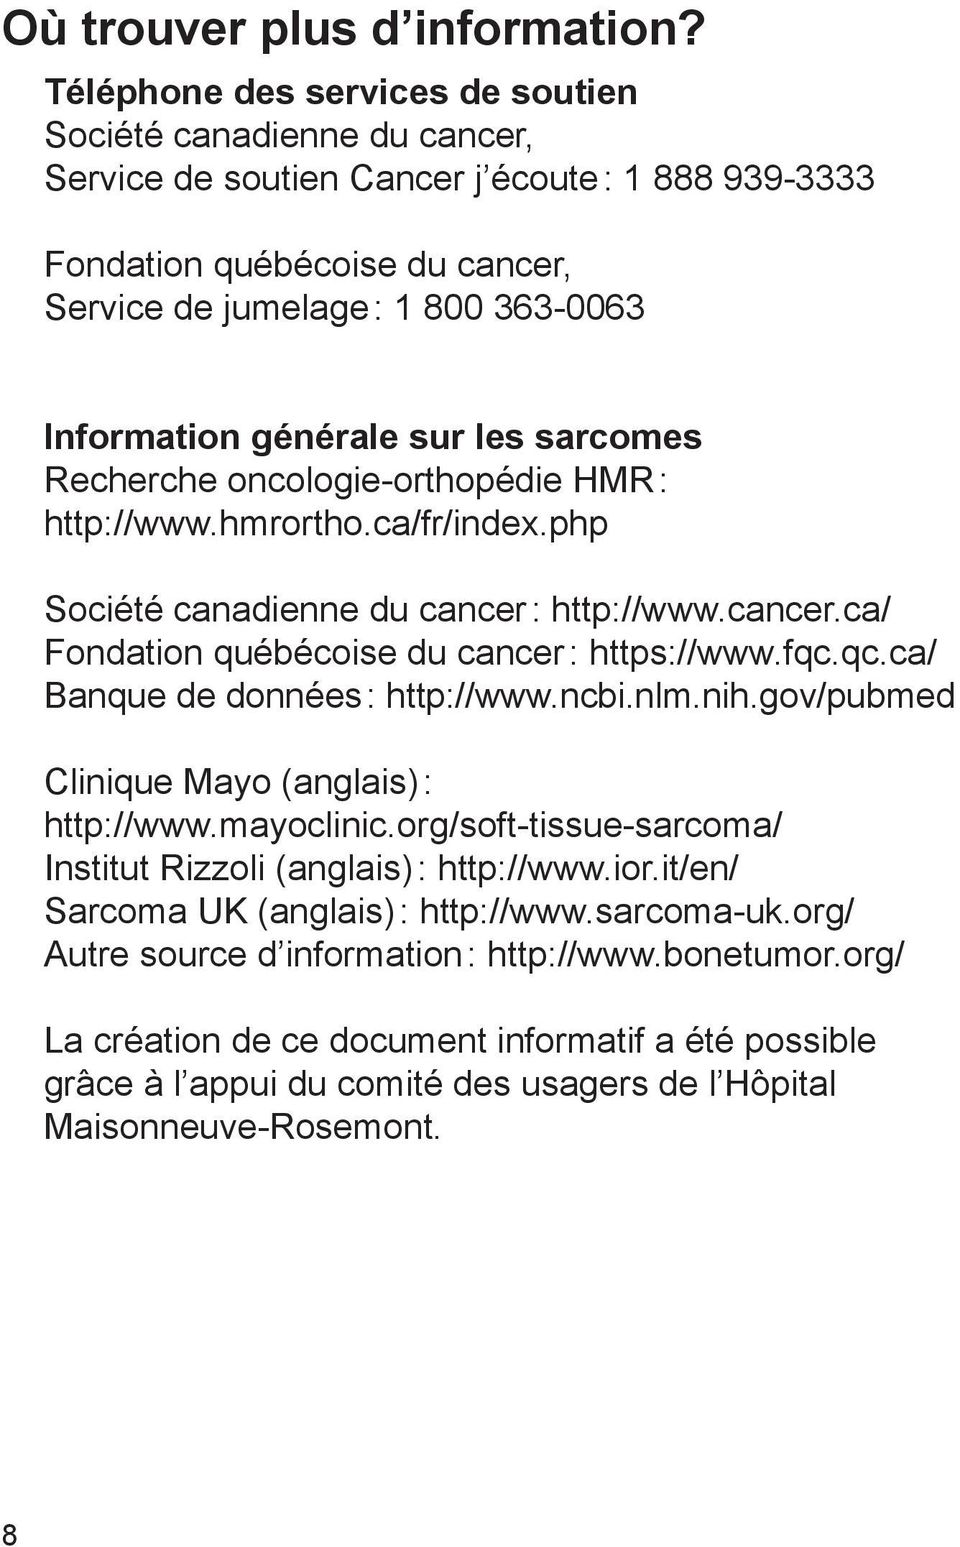 générale sur les sarcomes Recherche oncologie-orthopédie HMR : http://www.hmrortho.ca/fr/index.php Société canadienne du cancer : http://www.cancer.ca/ Fondation québécoise du cancer : https://www.